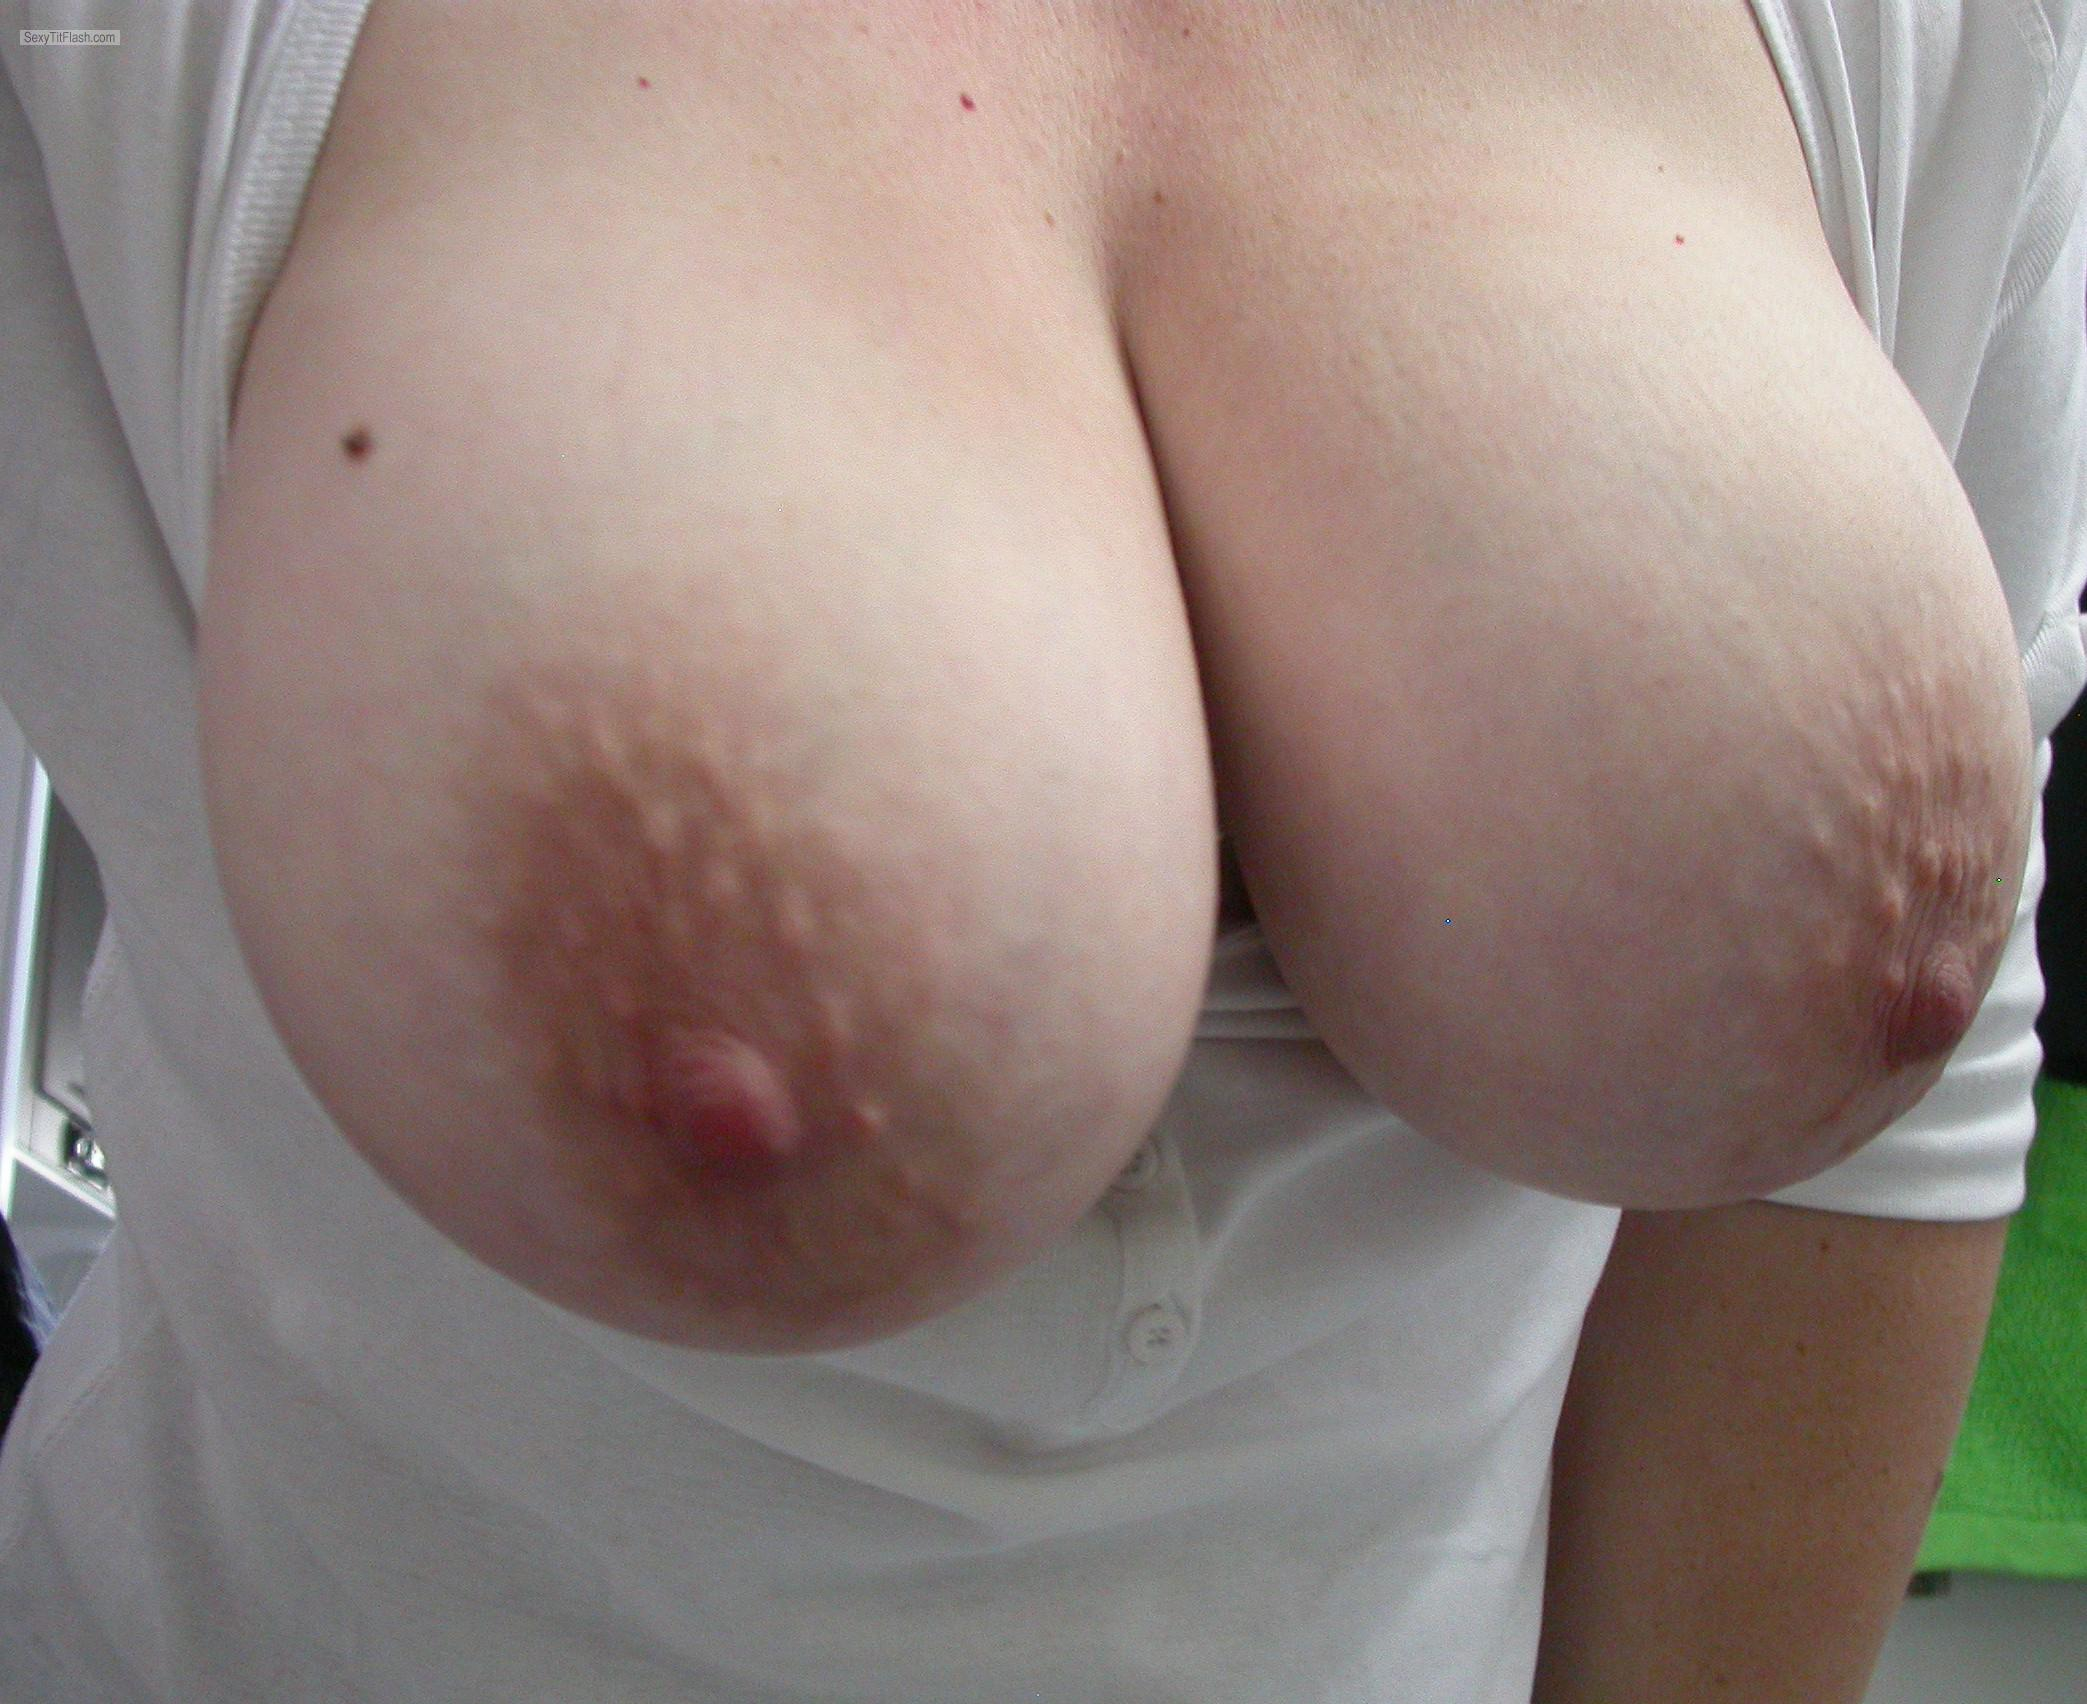 image My big boobs in white t shirt tank top see thru nipples